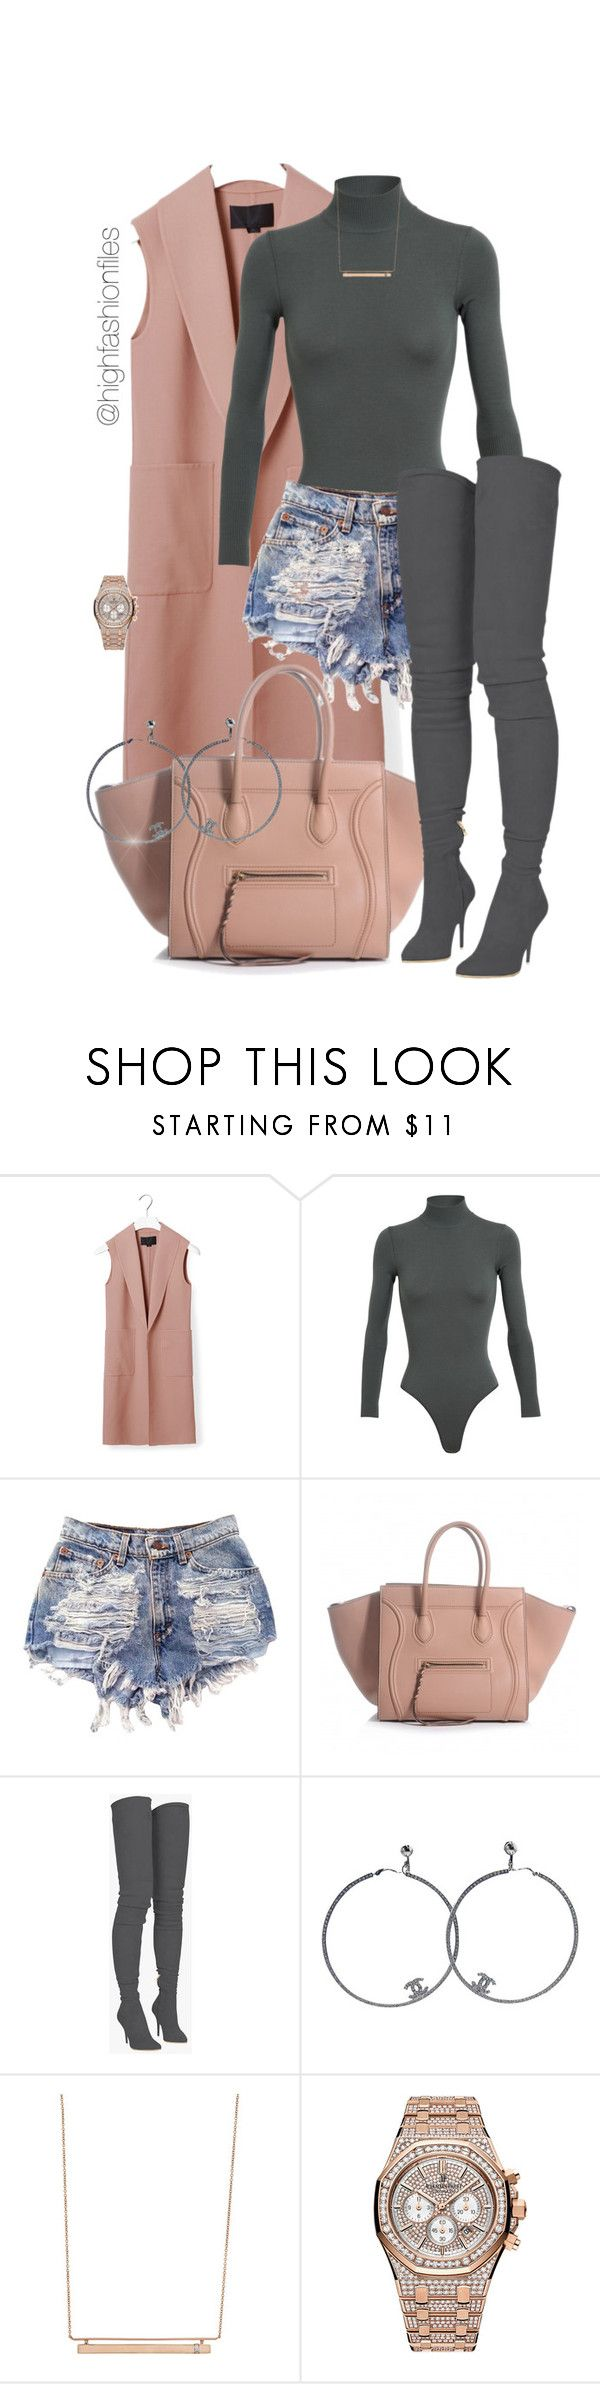 """Untitled #2727"" by highfashionfiles ❤ liked on Polyvore featuring Alexander Wang, Alaïa, Balmain, Chanel, Monique Péan and Audemars Piguet"